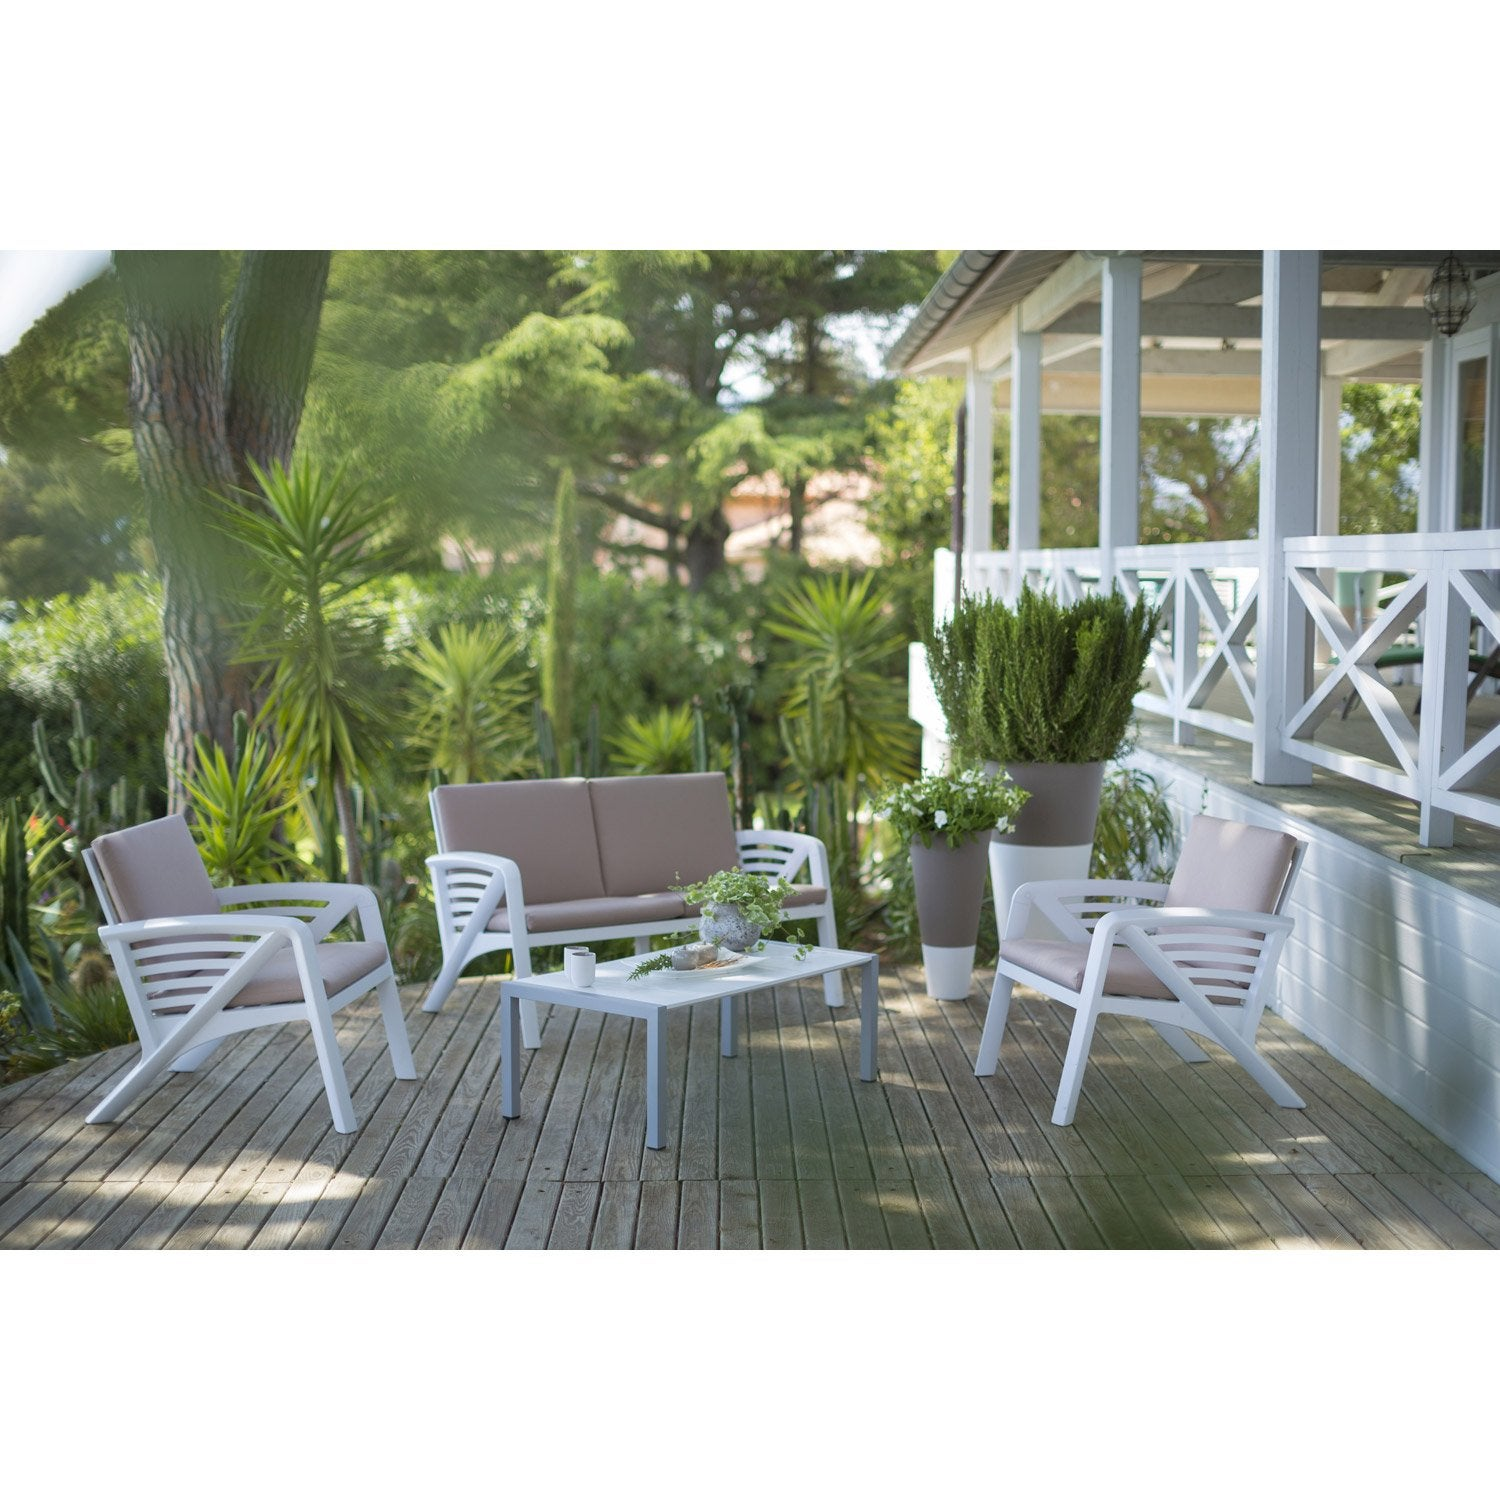 Salon bas de jardin sunday r sine plastique table - Salon de jardin leroy merlin resine ...